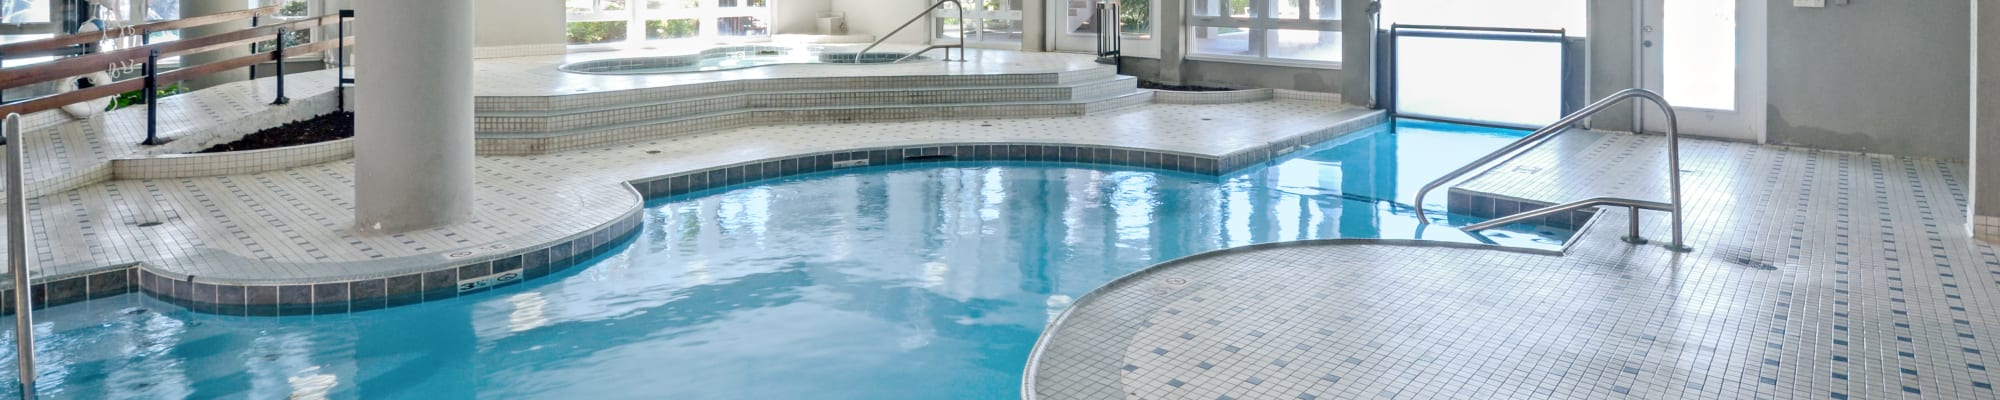 Amenities at Waterview Apartment Homes in Memphis, TN